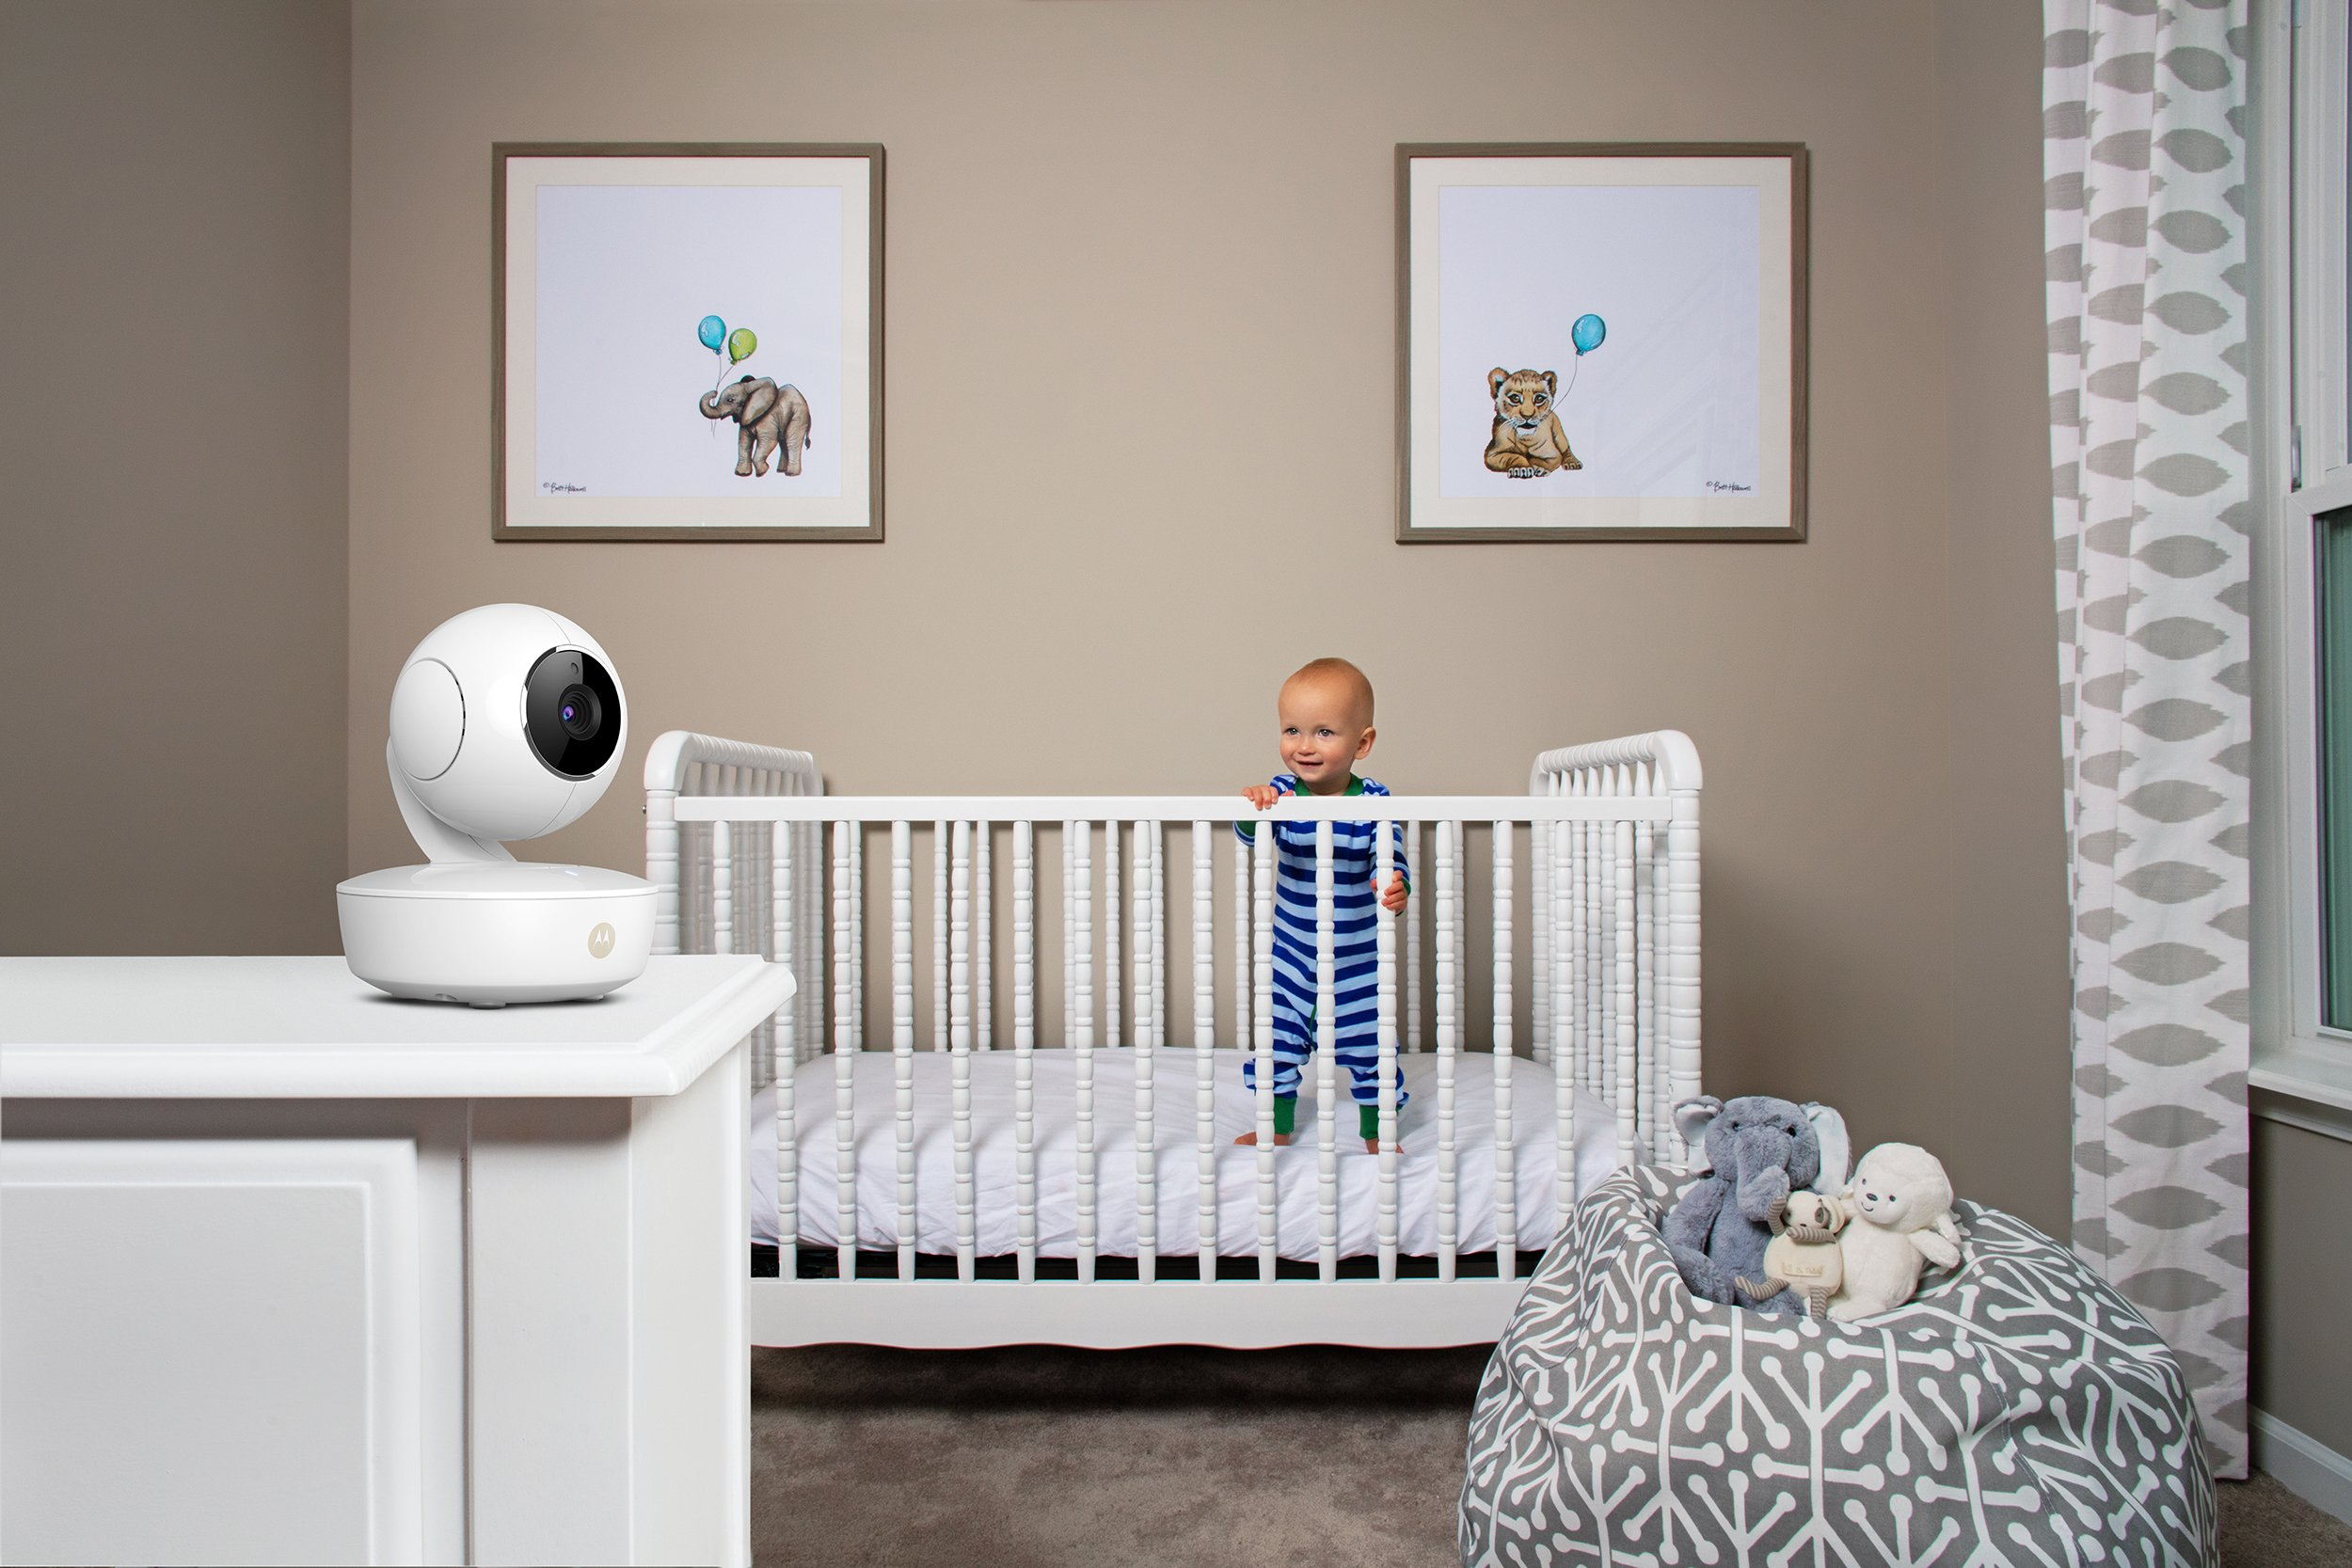 Motorola MBP36XL-2 Portable Video Baby Monitor, 5-inch Color Screen, 2 Rechargeable Cameras with Remote Pan, Tilt, and Zoom, Two-Way Audio, and Room Temperature Display by Motorola Baby (Image #7)